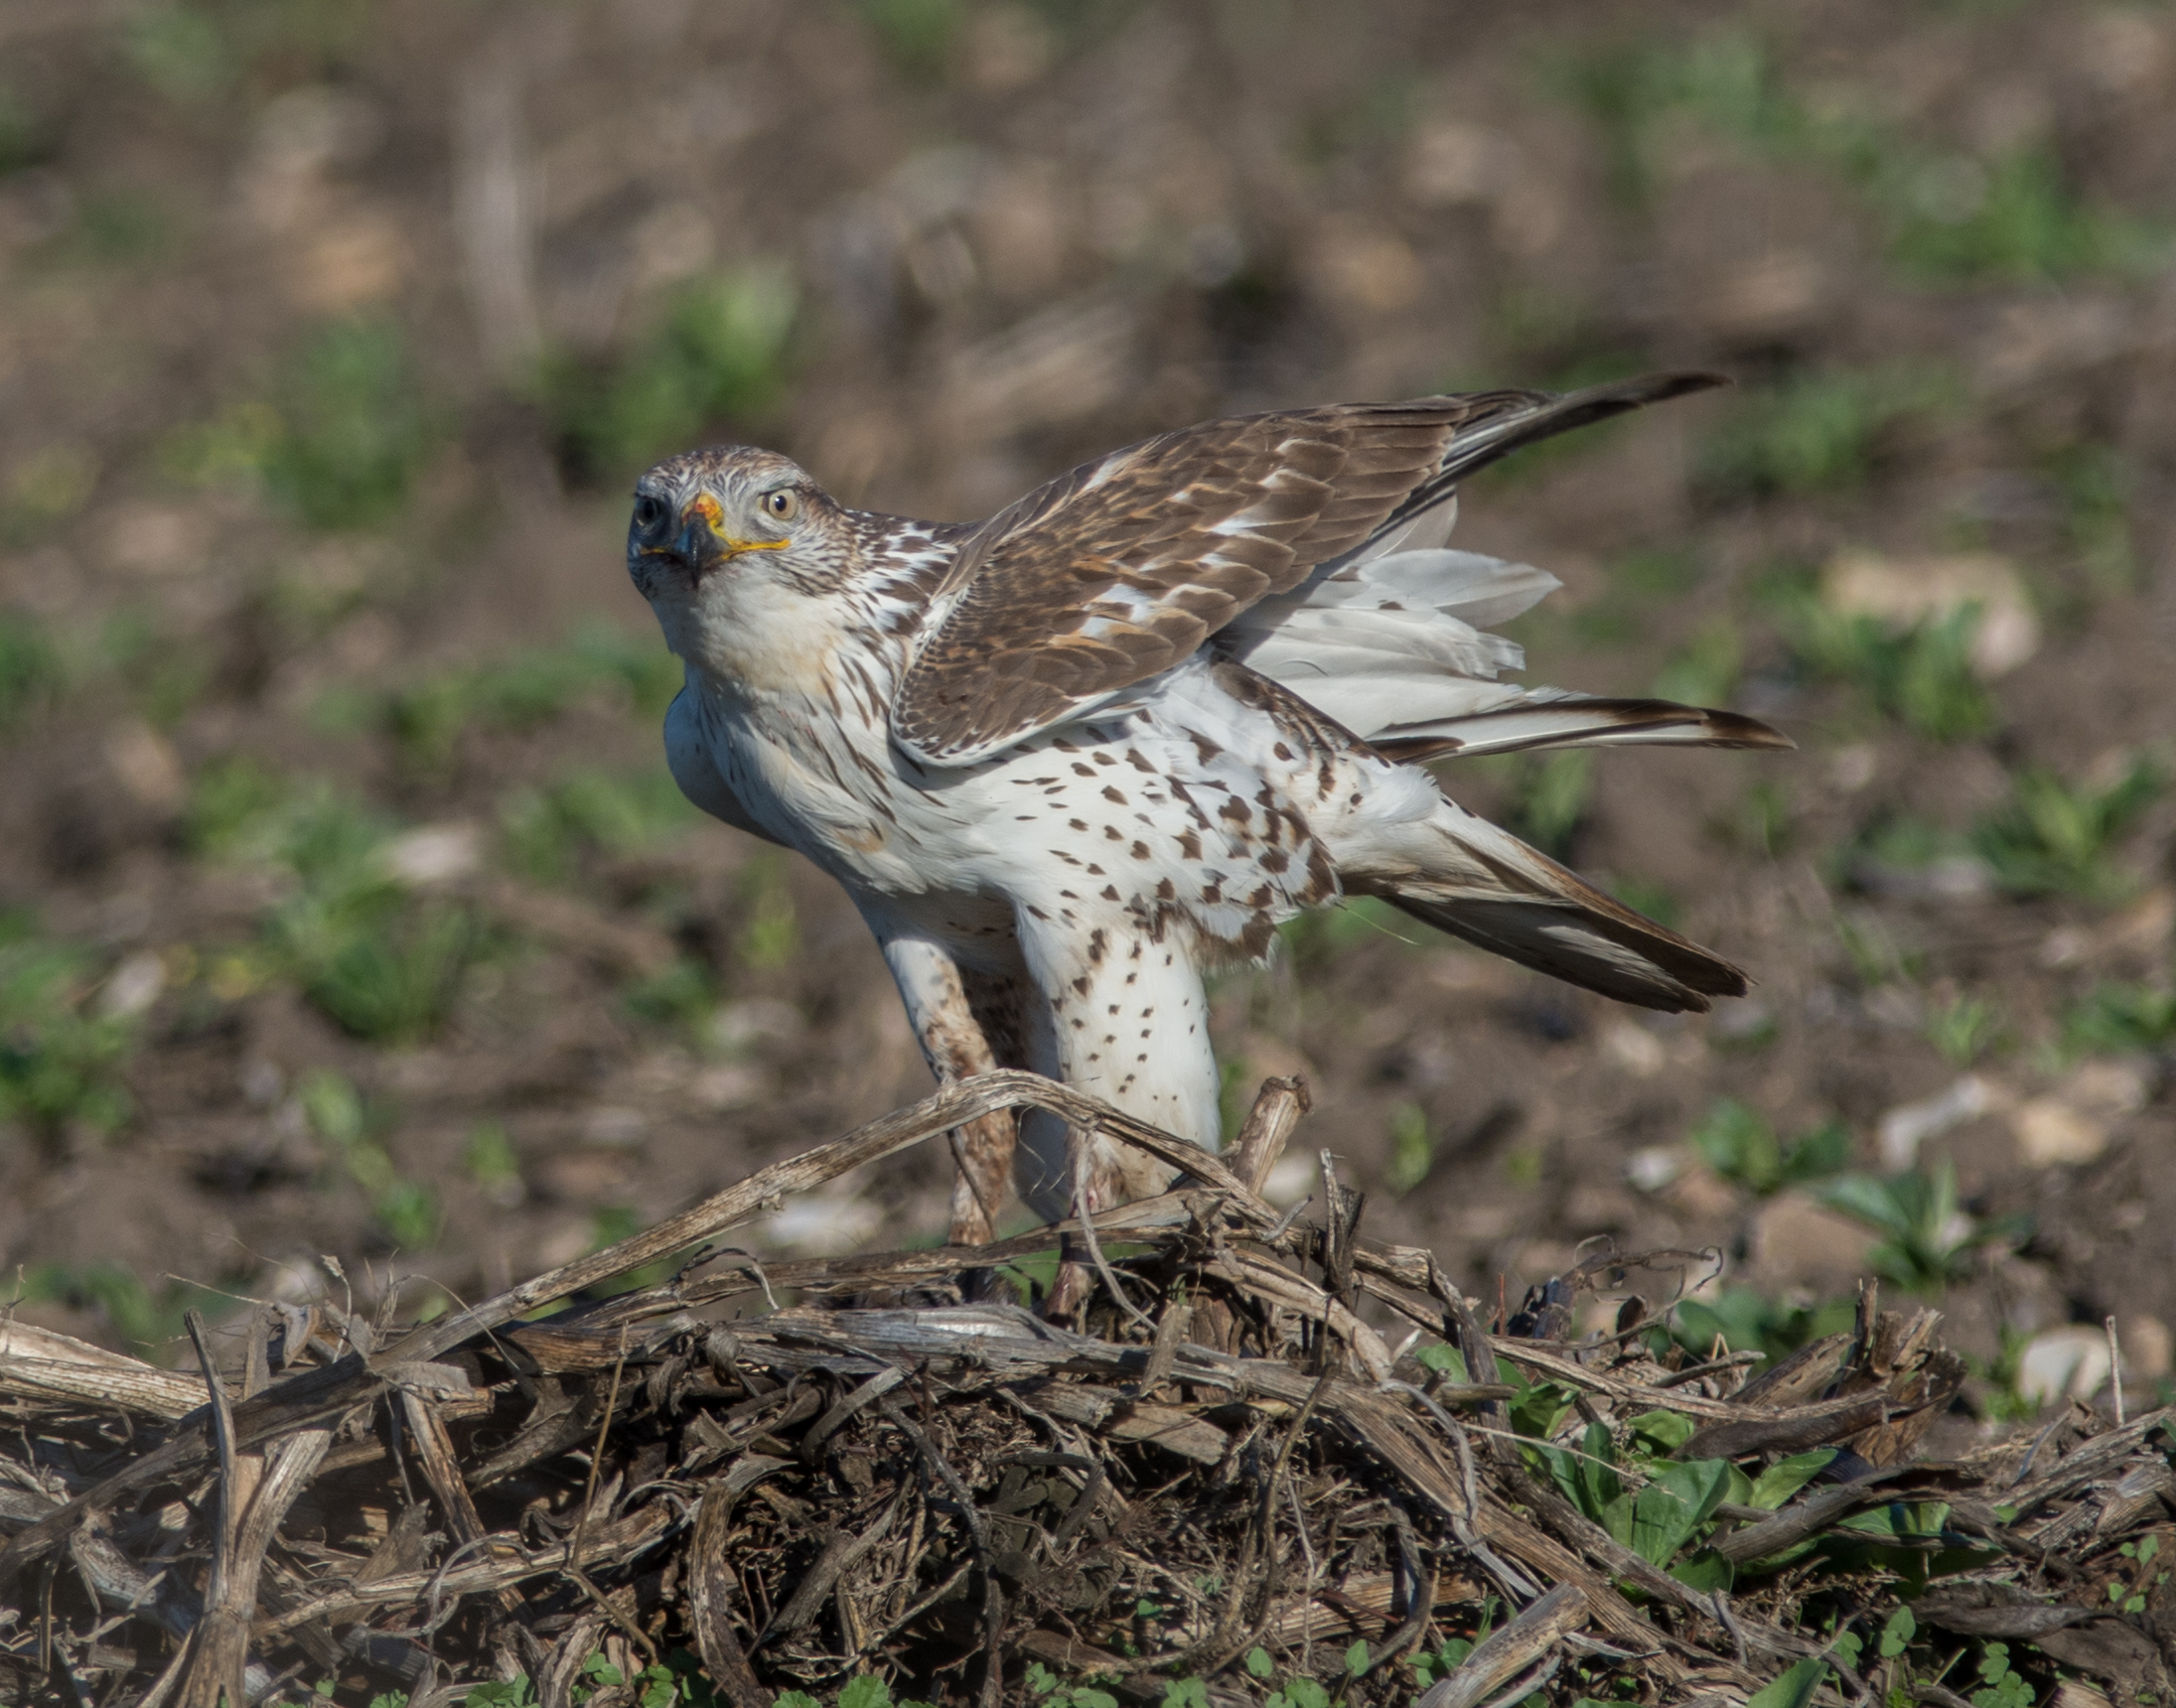 Photo of the Week 29: Ferruginous Hawk (Buteo regalis)  EQ: D720, 300mm f/2.8 with 1.4x TC  Taken: 11-27-2015 at 9:59a   Settings: 630mm eqv, 1/1000s, f/5.6, ISO250, +1/3EV  Conditions: Sunny and clear